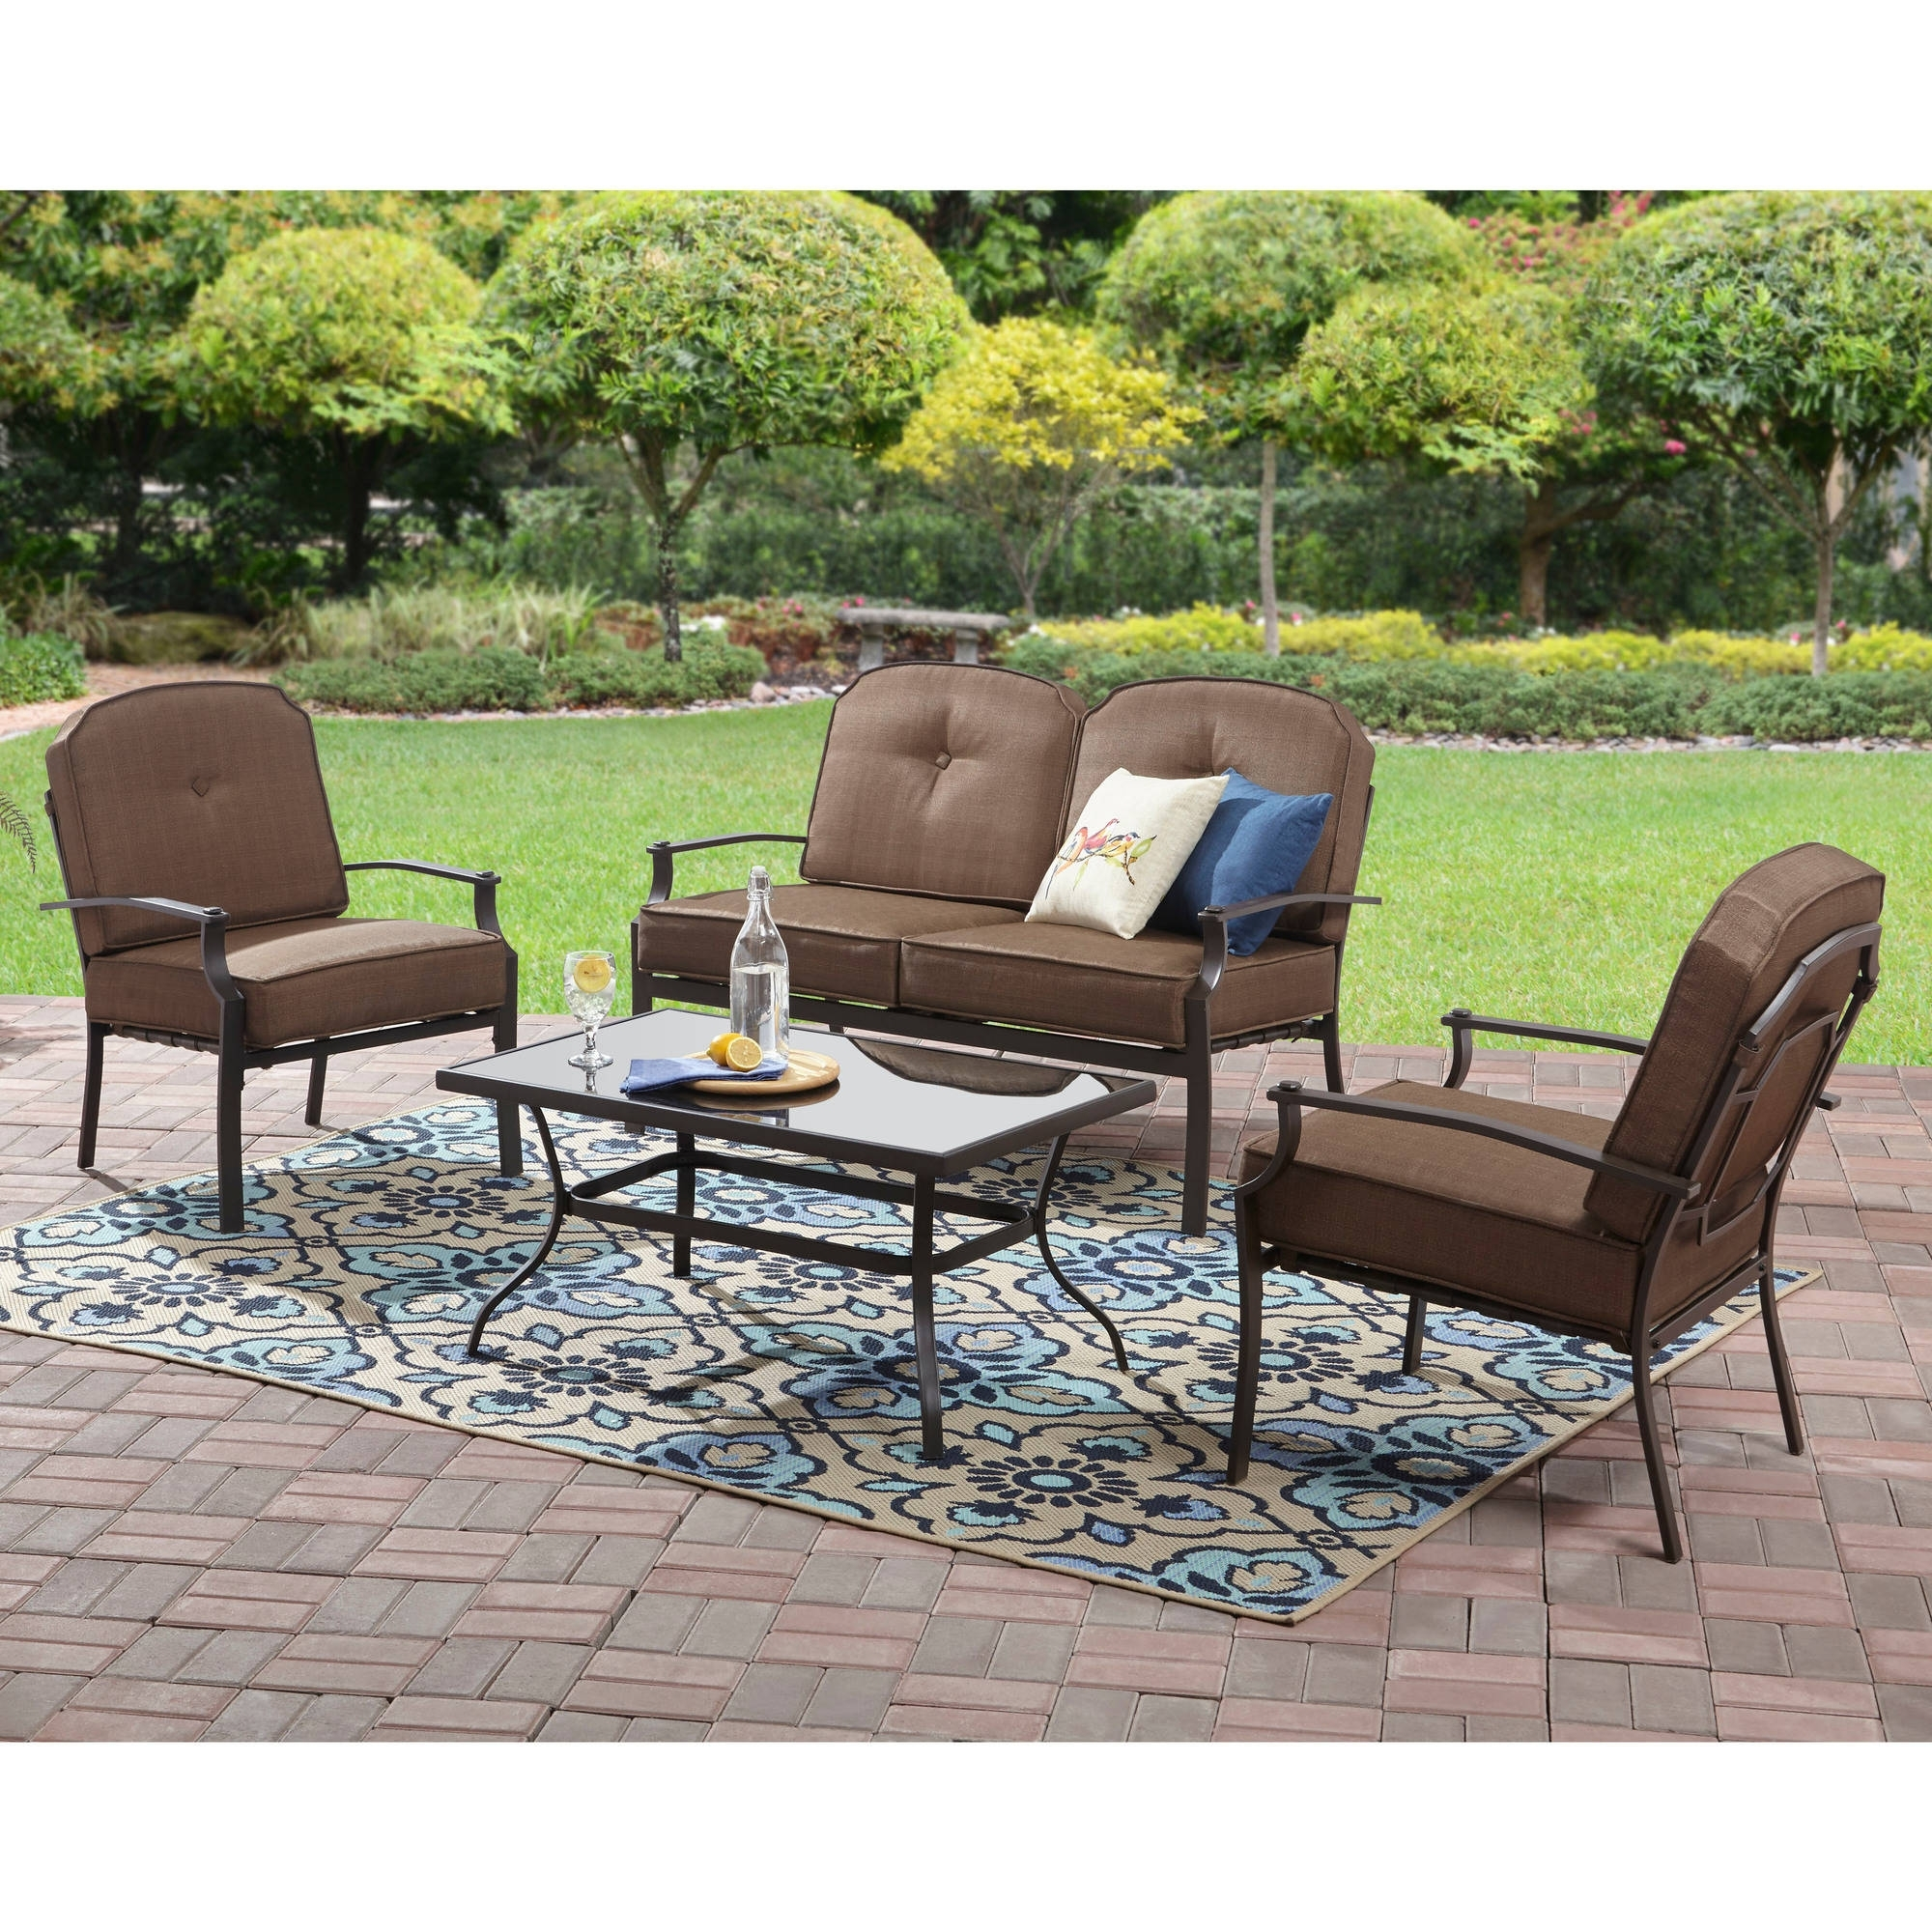 Most Recently Released Patio Conversation Sets Within Mainstays Spring Creek 5 Piece Patio Dining Set, Seats 4 – Walmart (View 10 of 15)